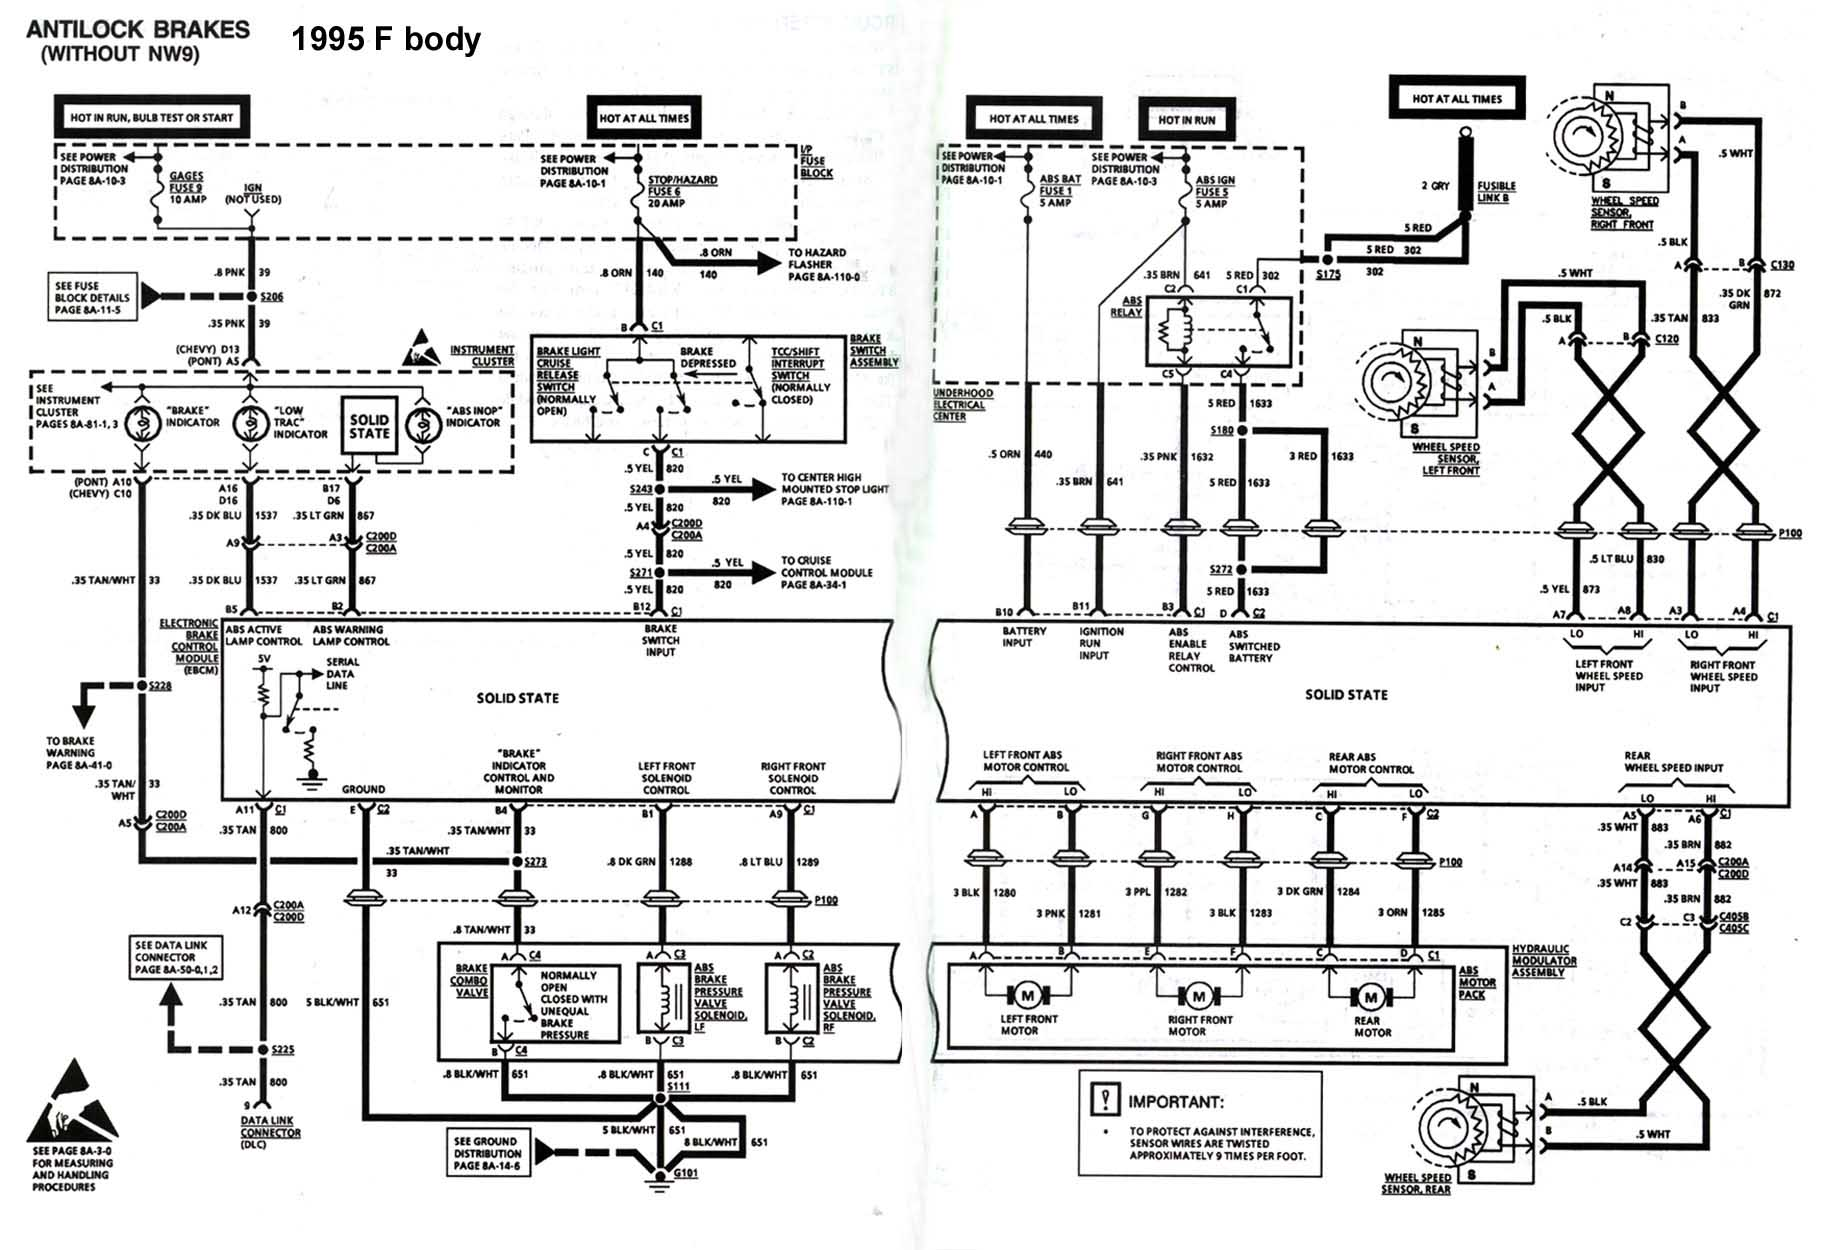 2002 pontiac sunfire radio wiring diagram 5 3 defense 4th gen lt1 f body tech aids abs schematic non tcs